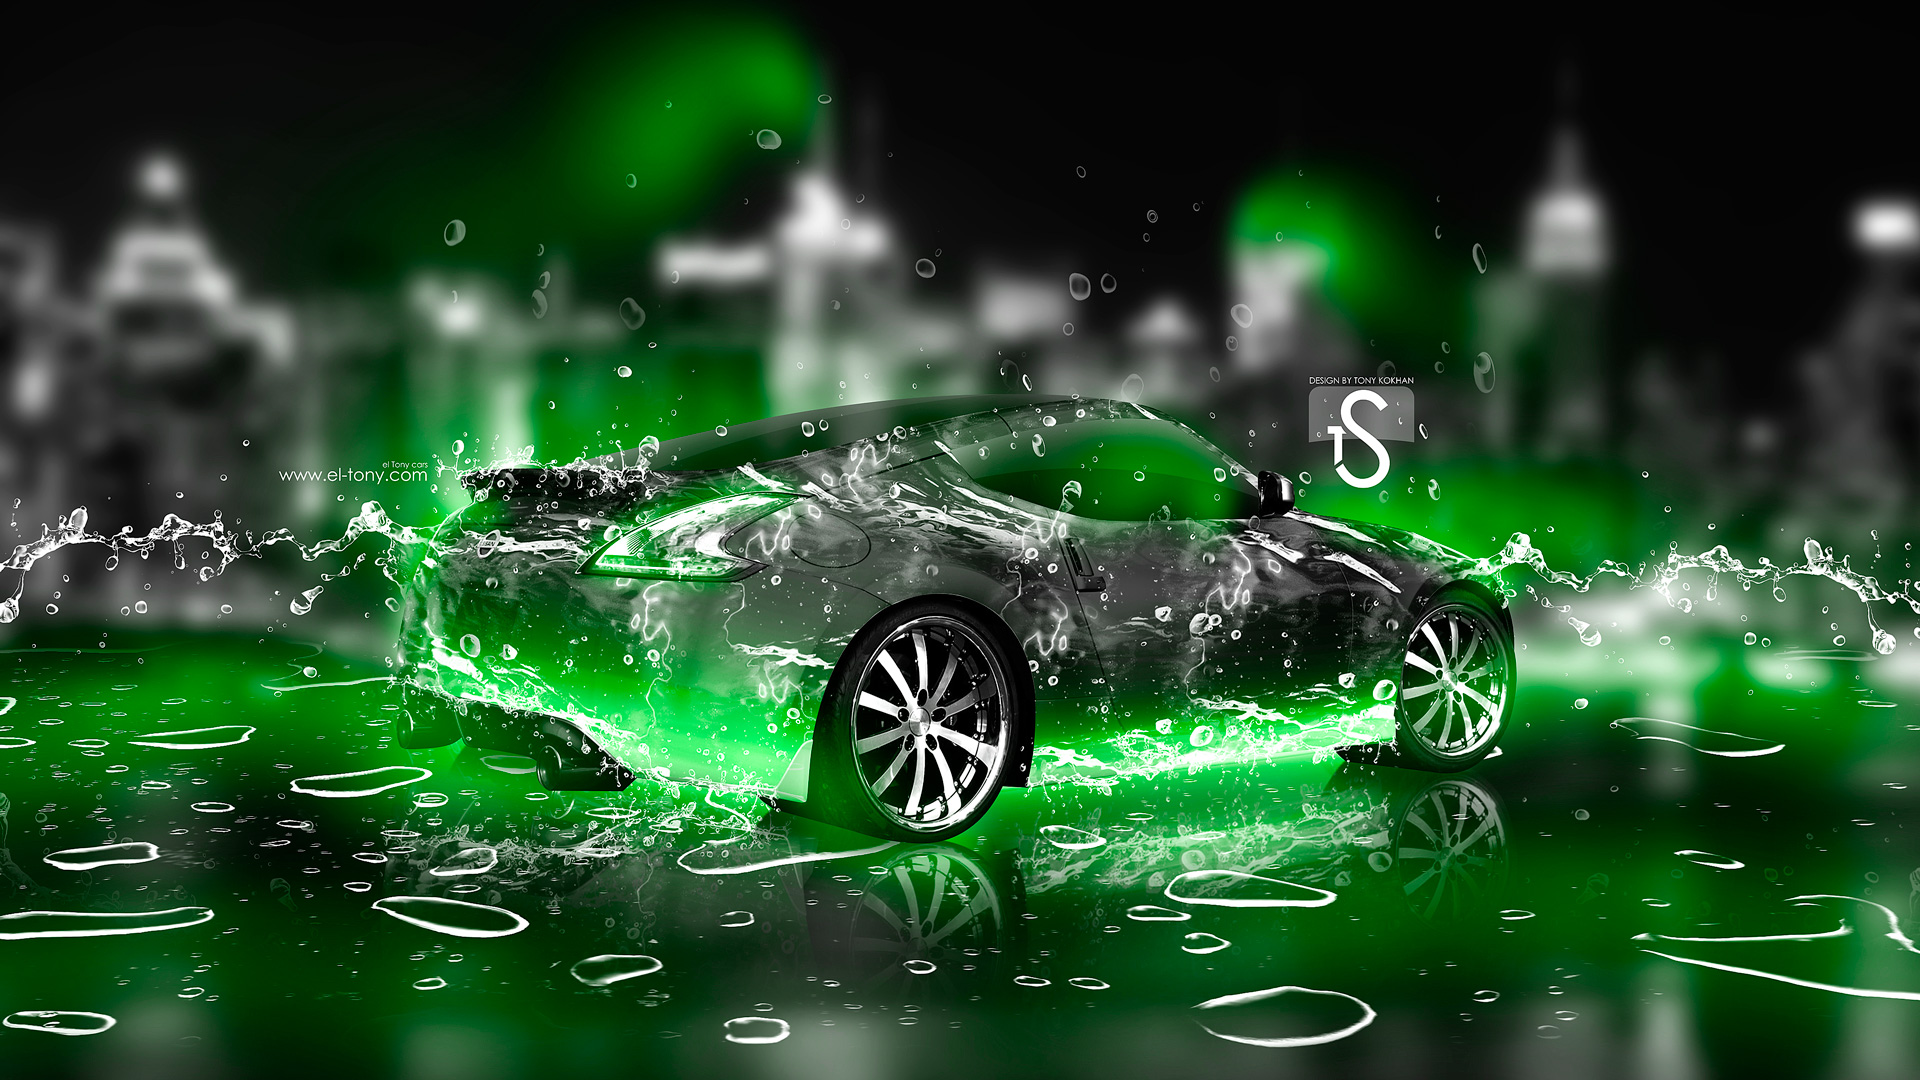 Nissan 370Z Ice Water City Car 2013 Green Neon HD Wallpapers design by 1920x1080